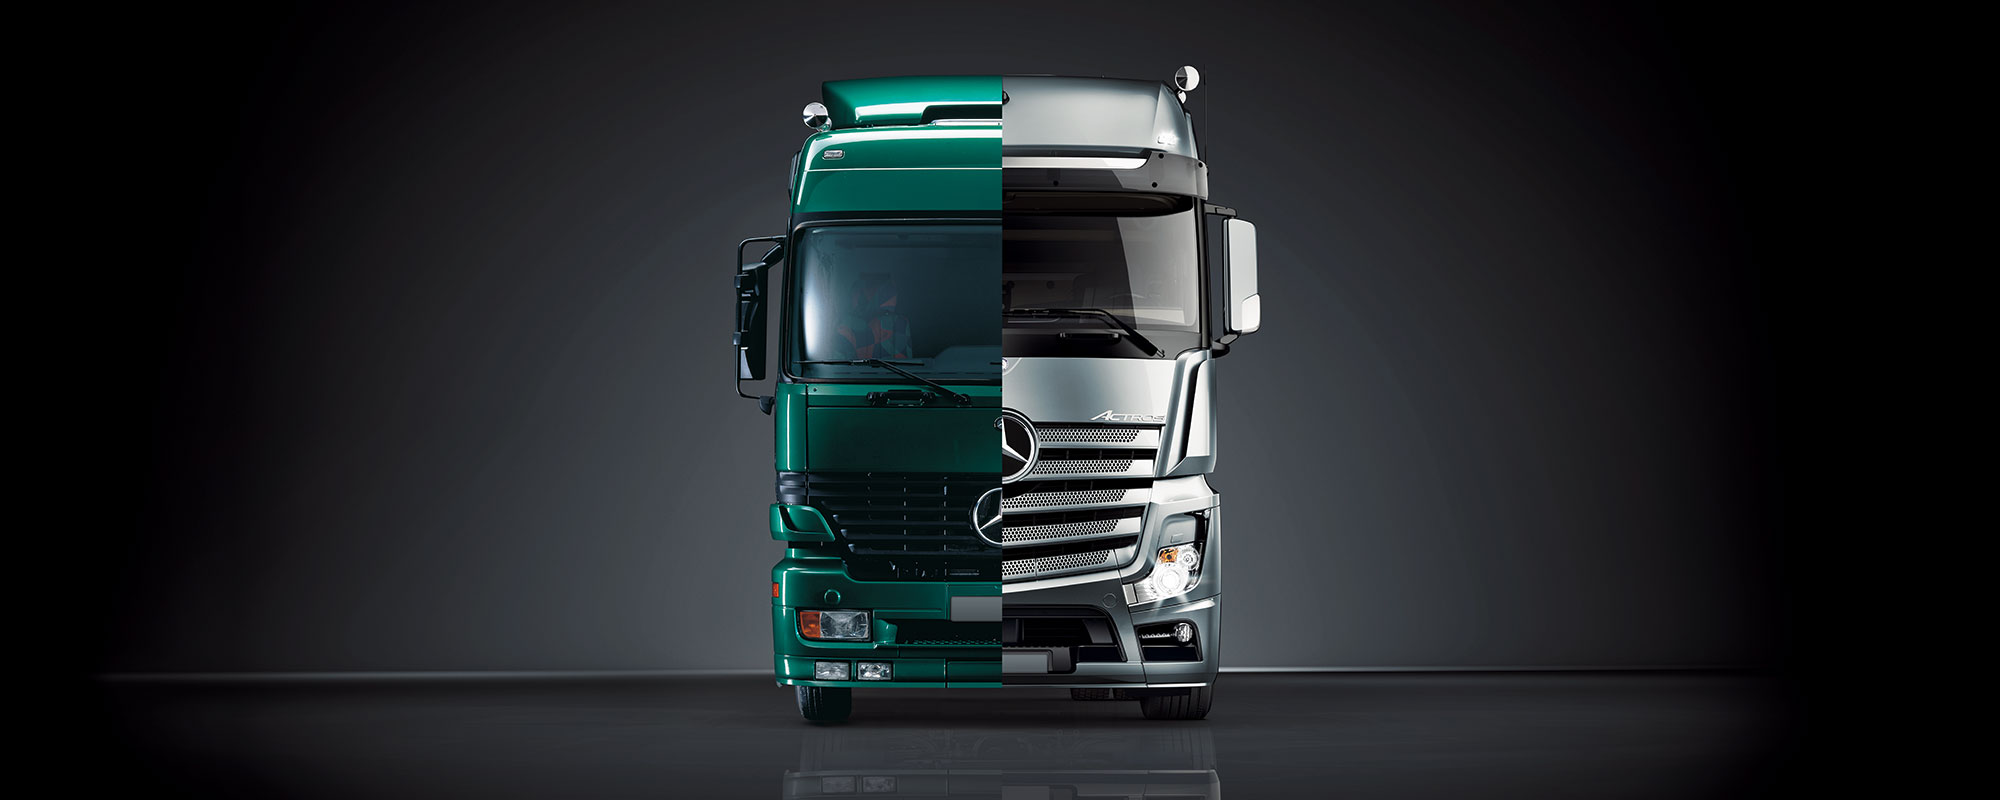 GWF_WEB_MBO_Actros_2000x800_01